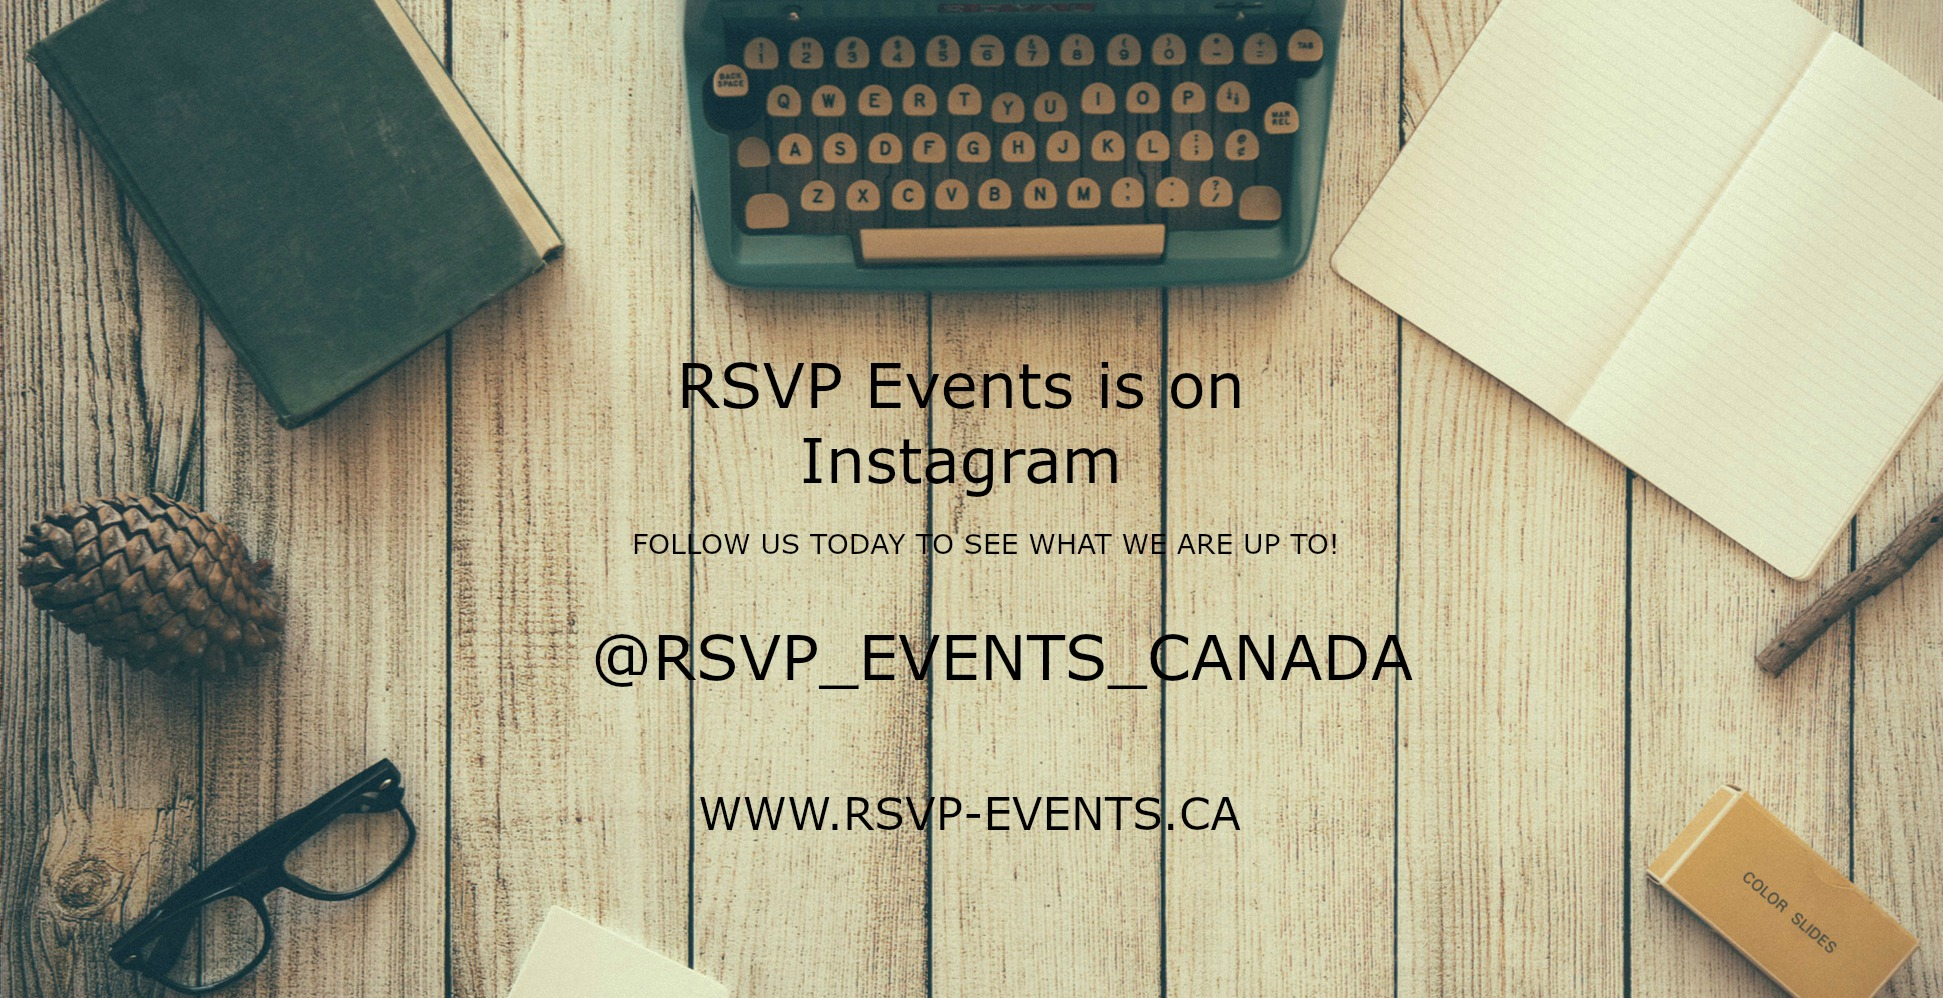 RSVP Events Ottawa Instagram